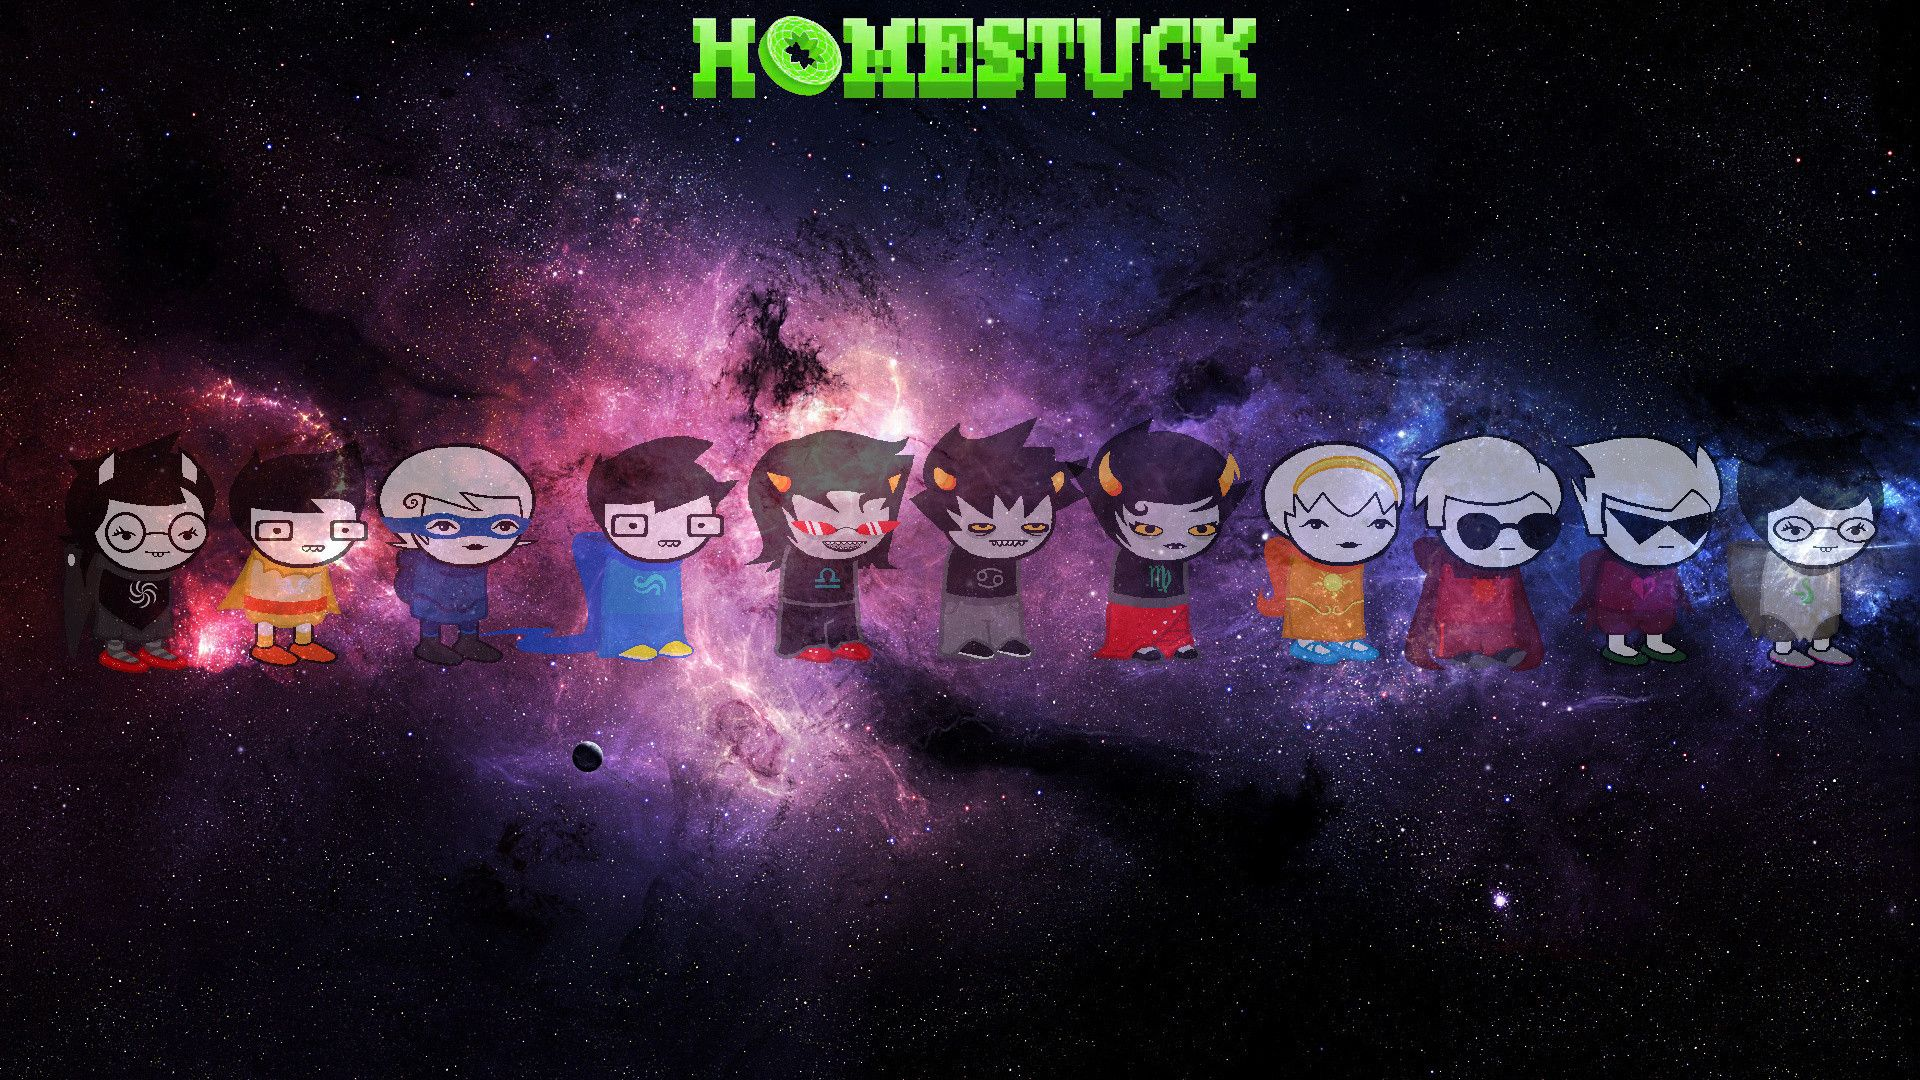 Homestuck Wallpaper That I Made For You Guys Enjoy 1920x1080